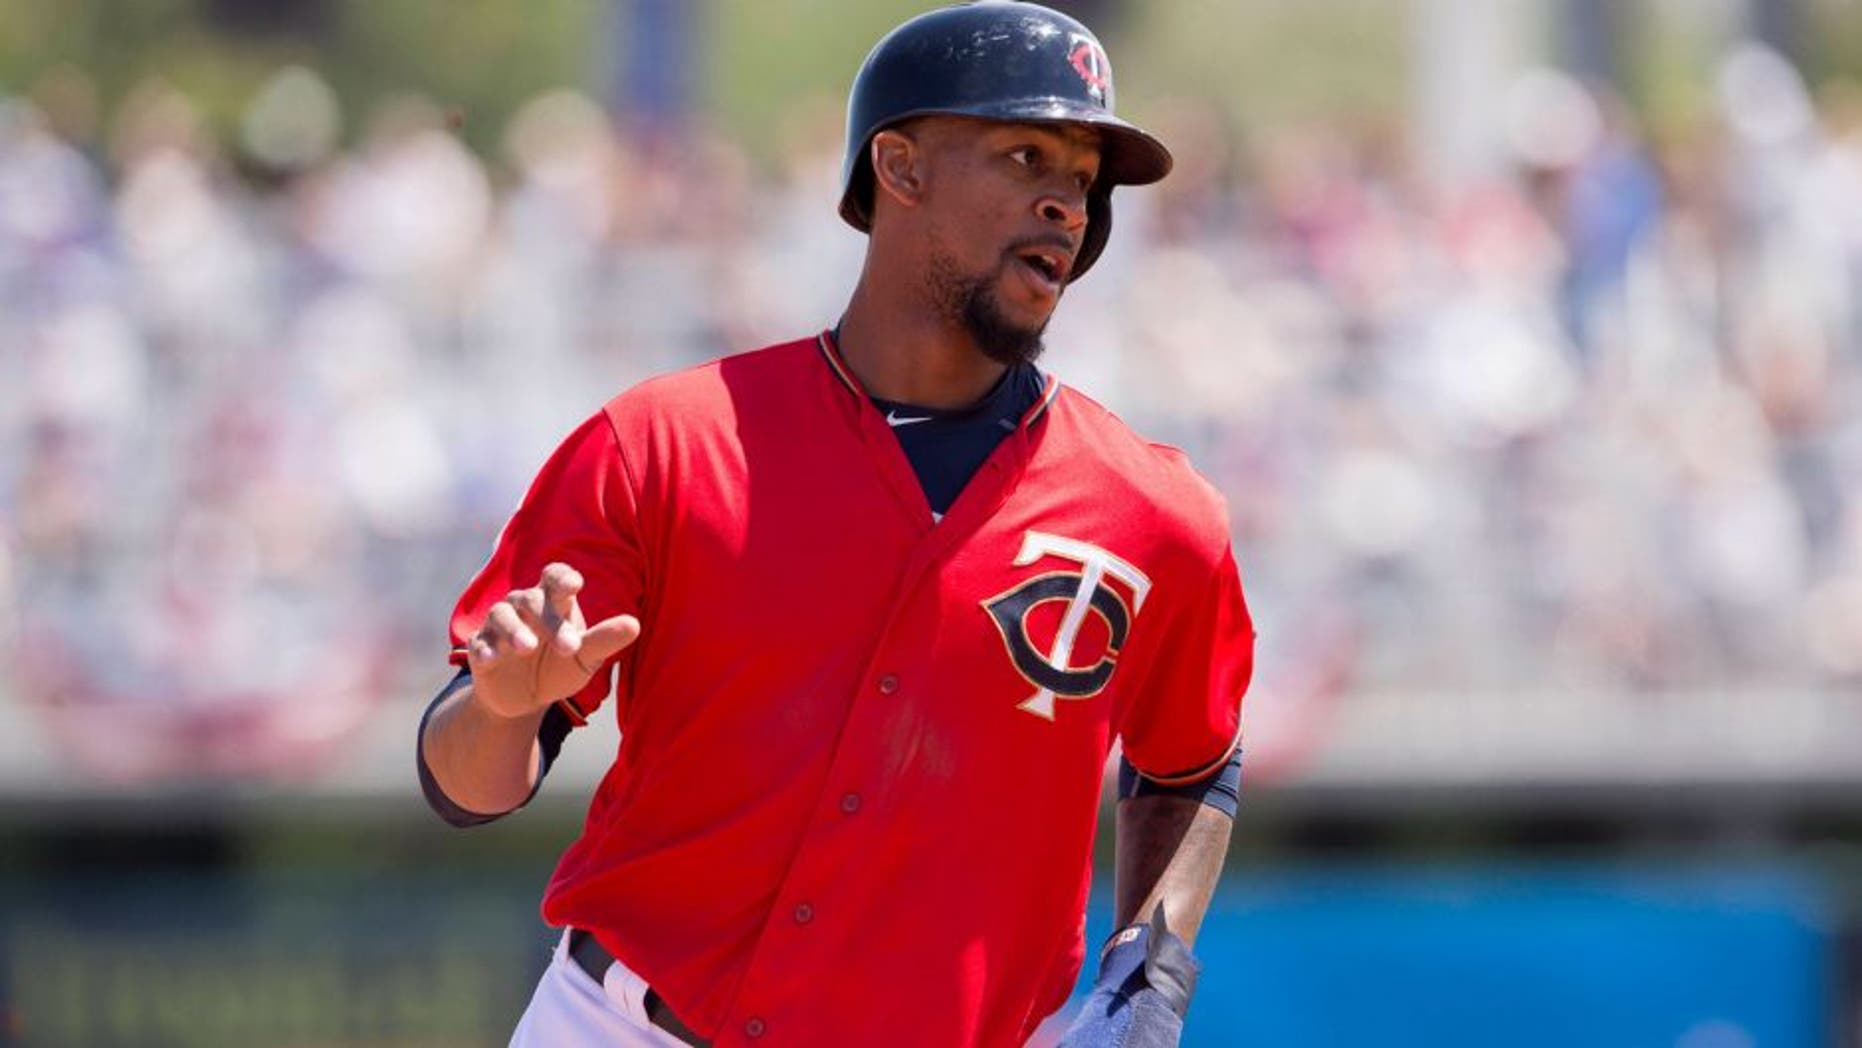 Minnesota Twins designated hitter Byron Buxton runs to third base.